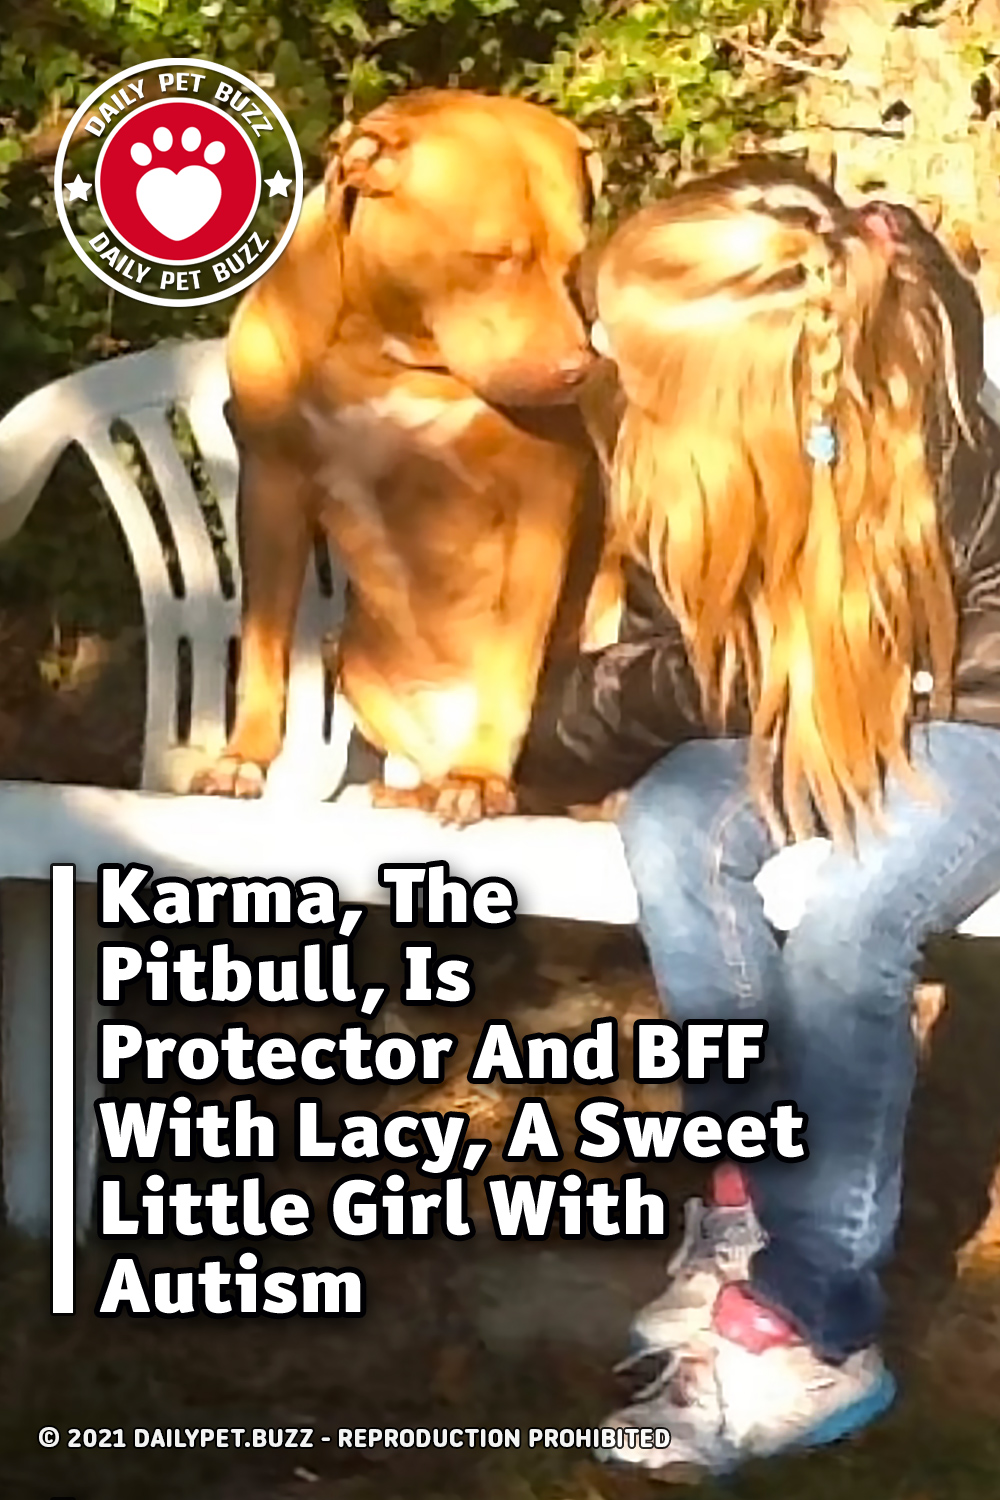 Karma, The Pitbull, Is Protector And BFF With Lacy, A Sweet Little Girl With Autism